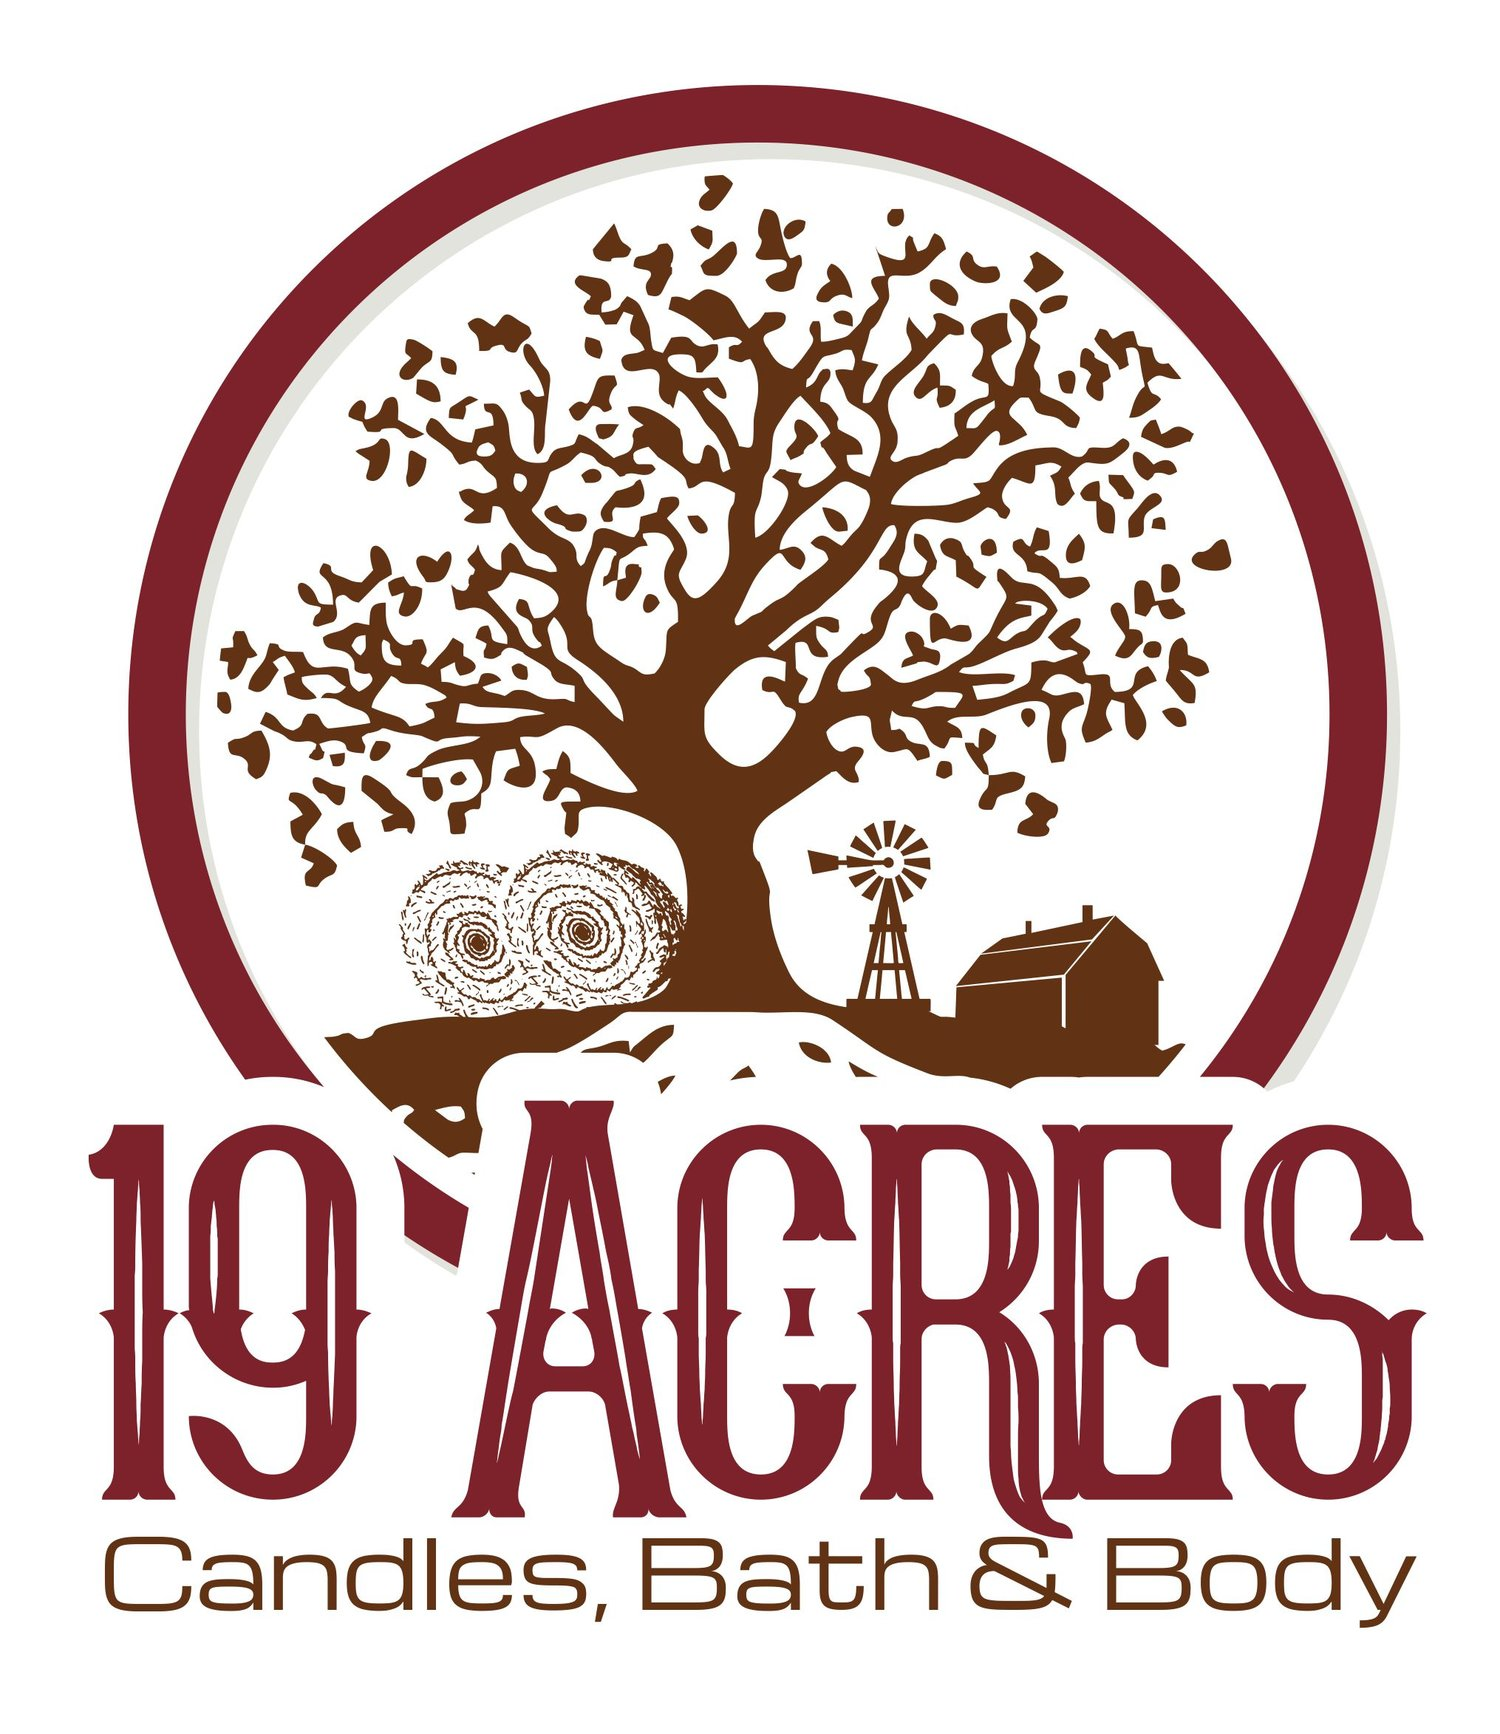 19 Acres Candles, Bath & Body